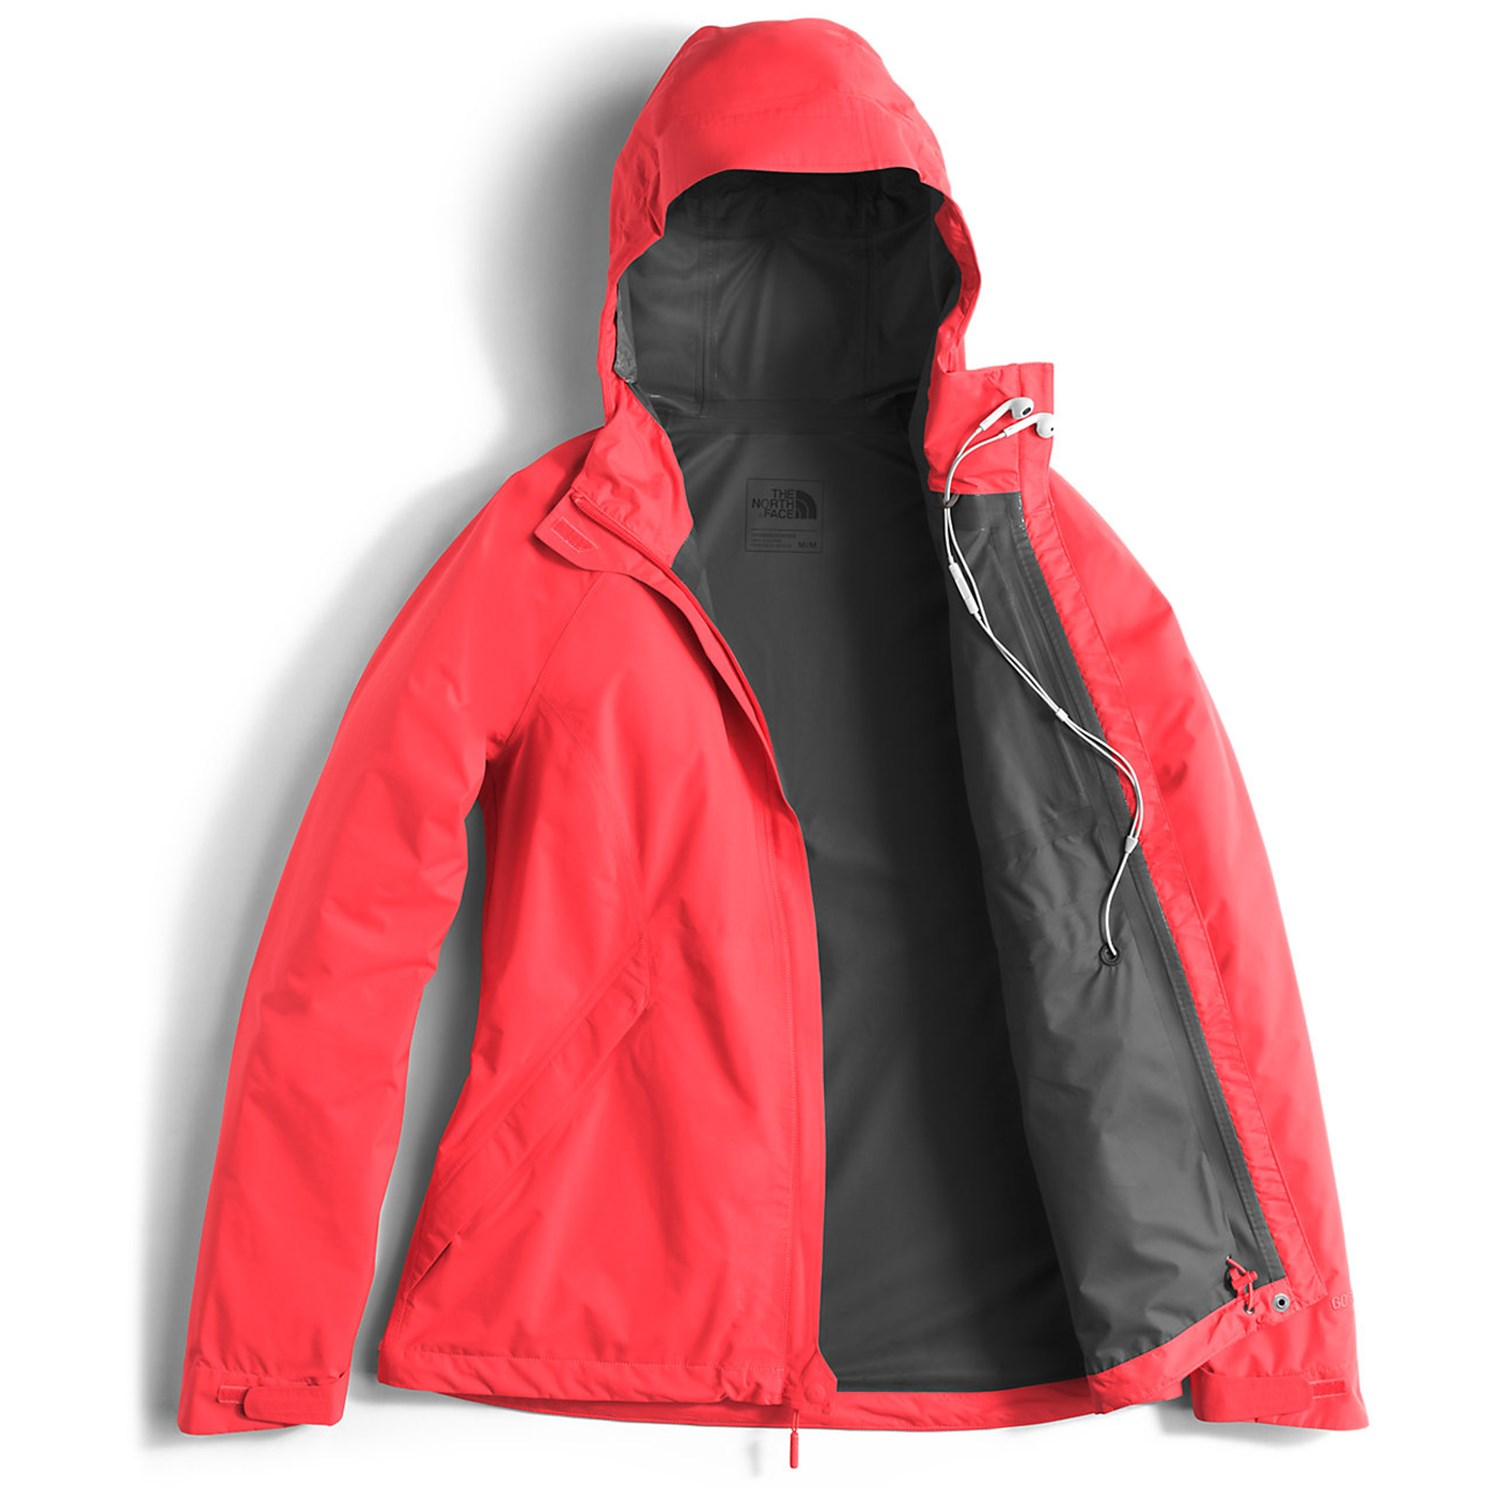 dbece0cf6a5 The North Face Dryzzle Jacket - Women s